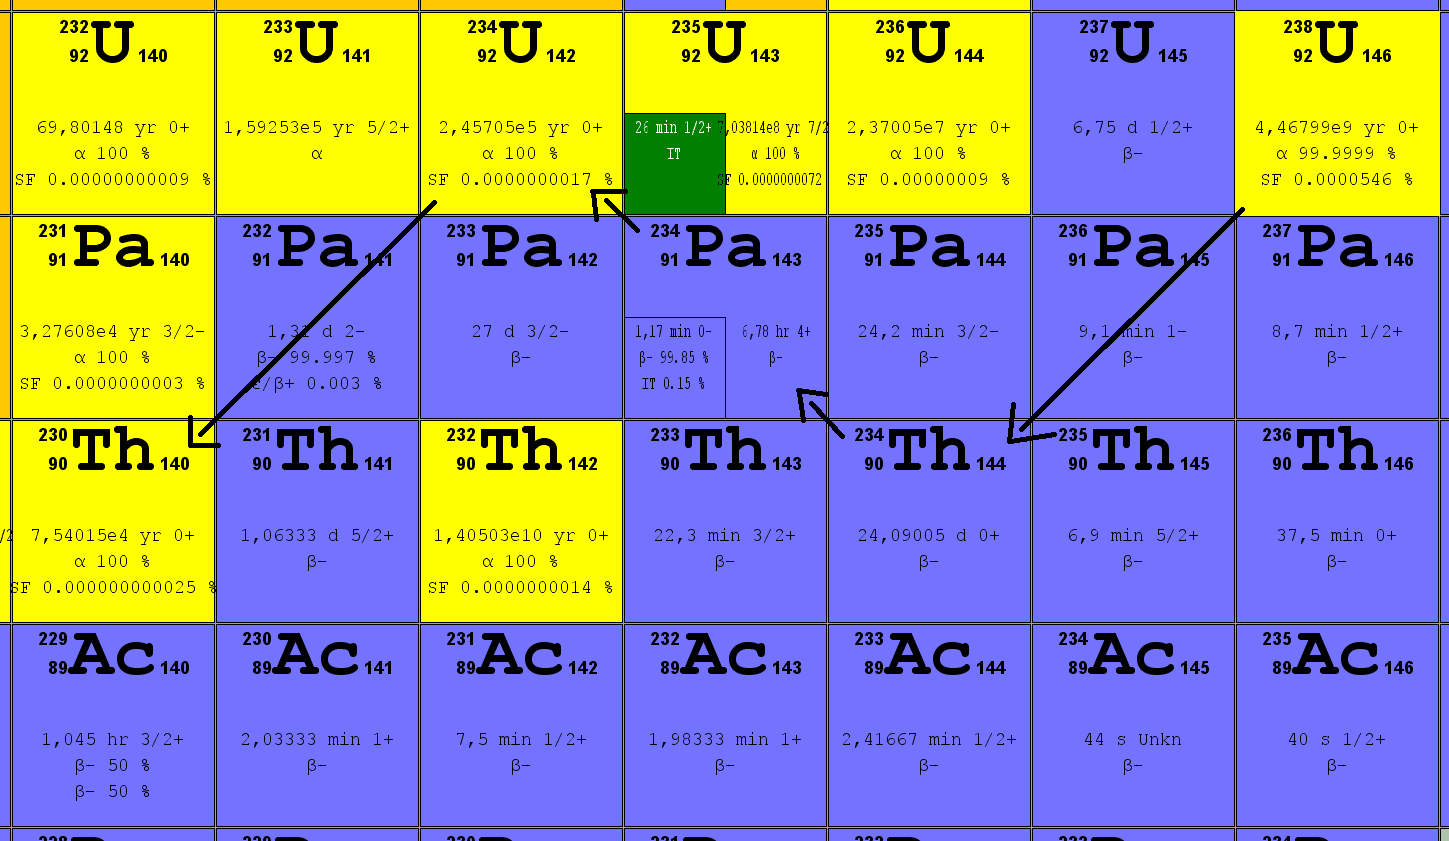 Decay Mode and Half-life of Isotopes of Uranium